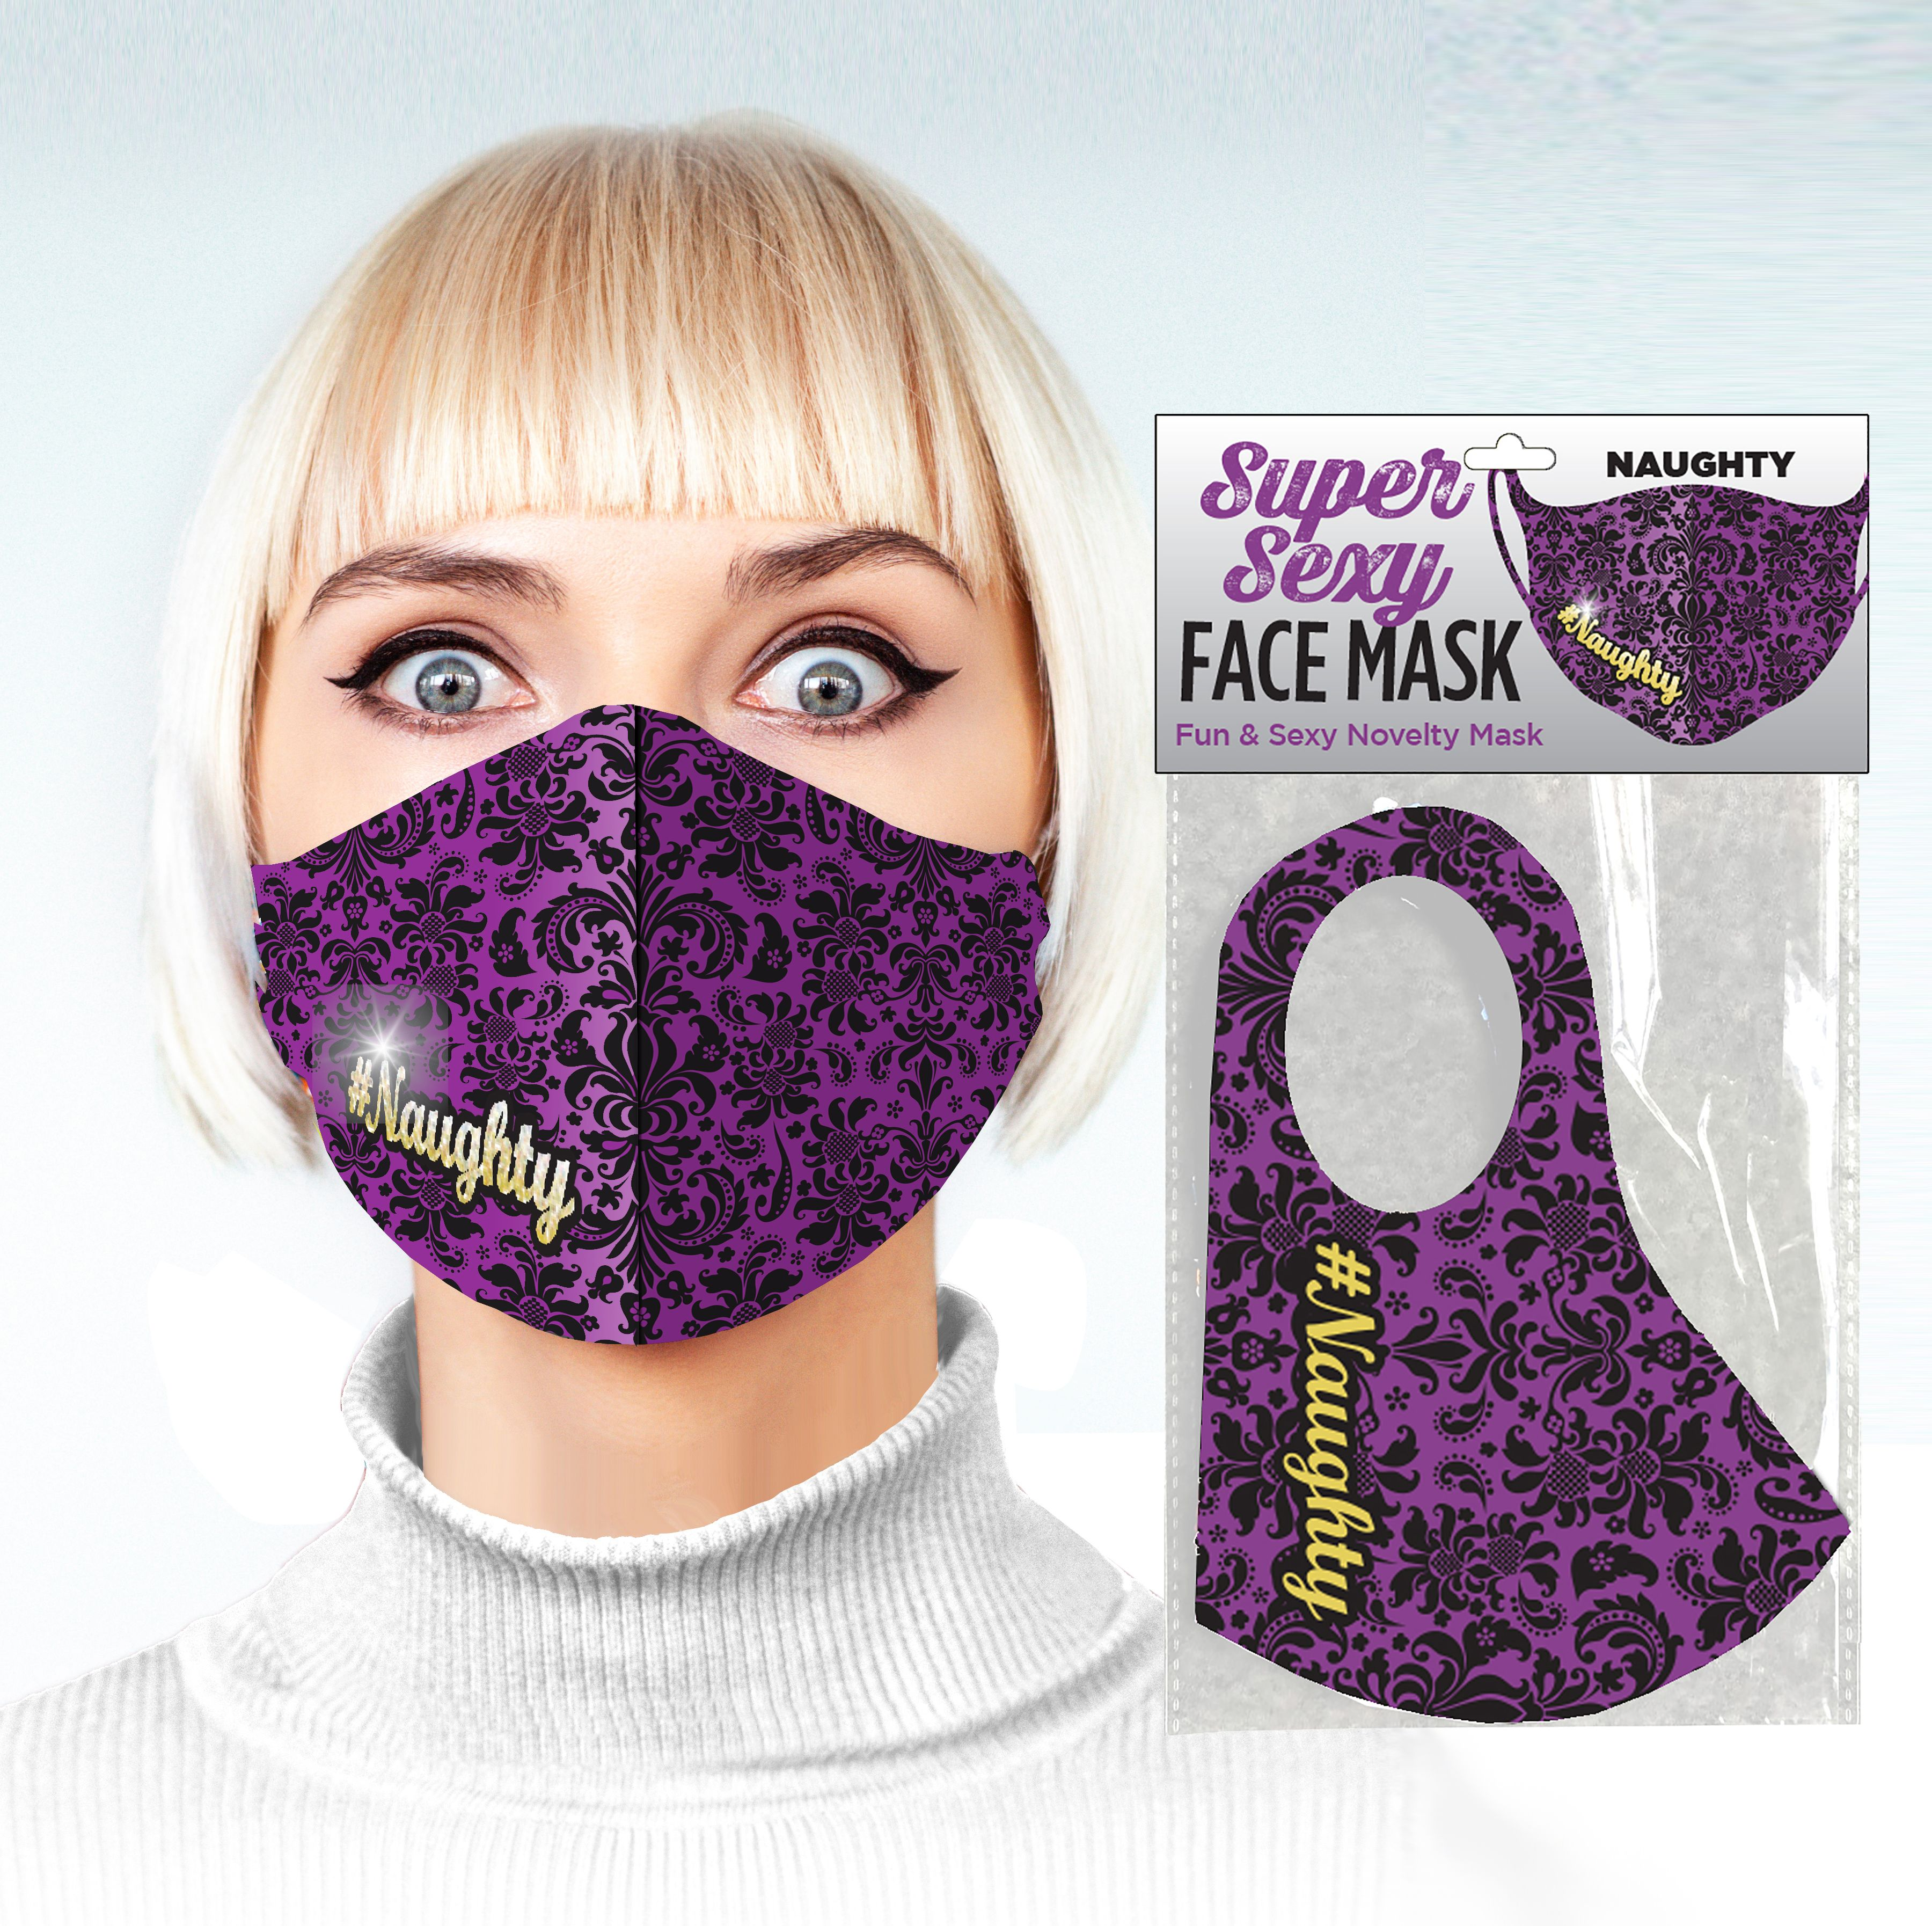 SUPER SEXY #NAUGHTY FACE MASK covid, adult, covid-19, facemask